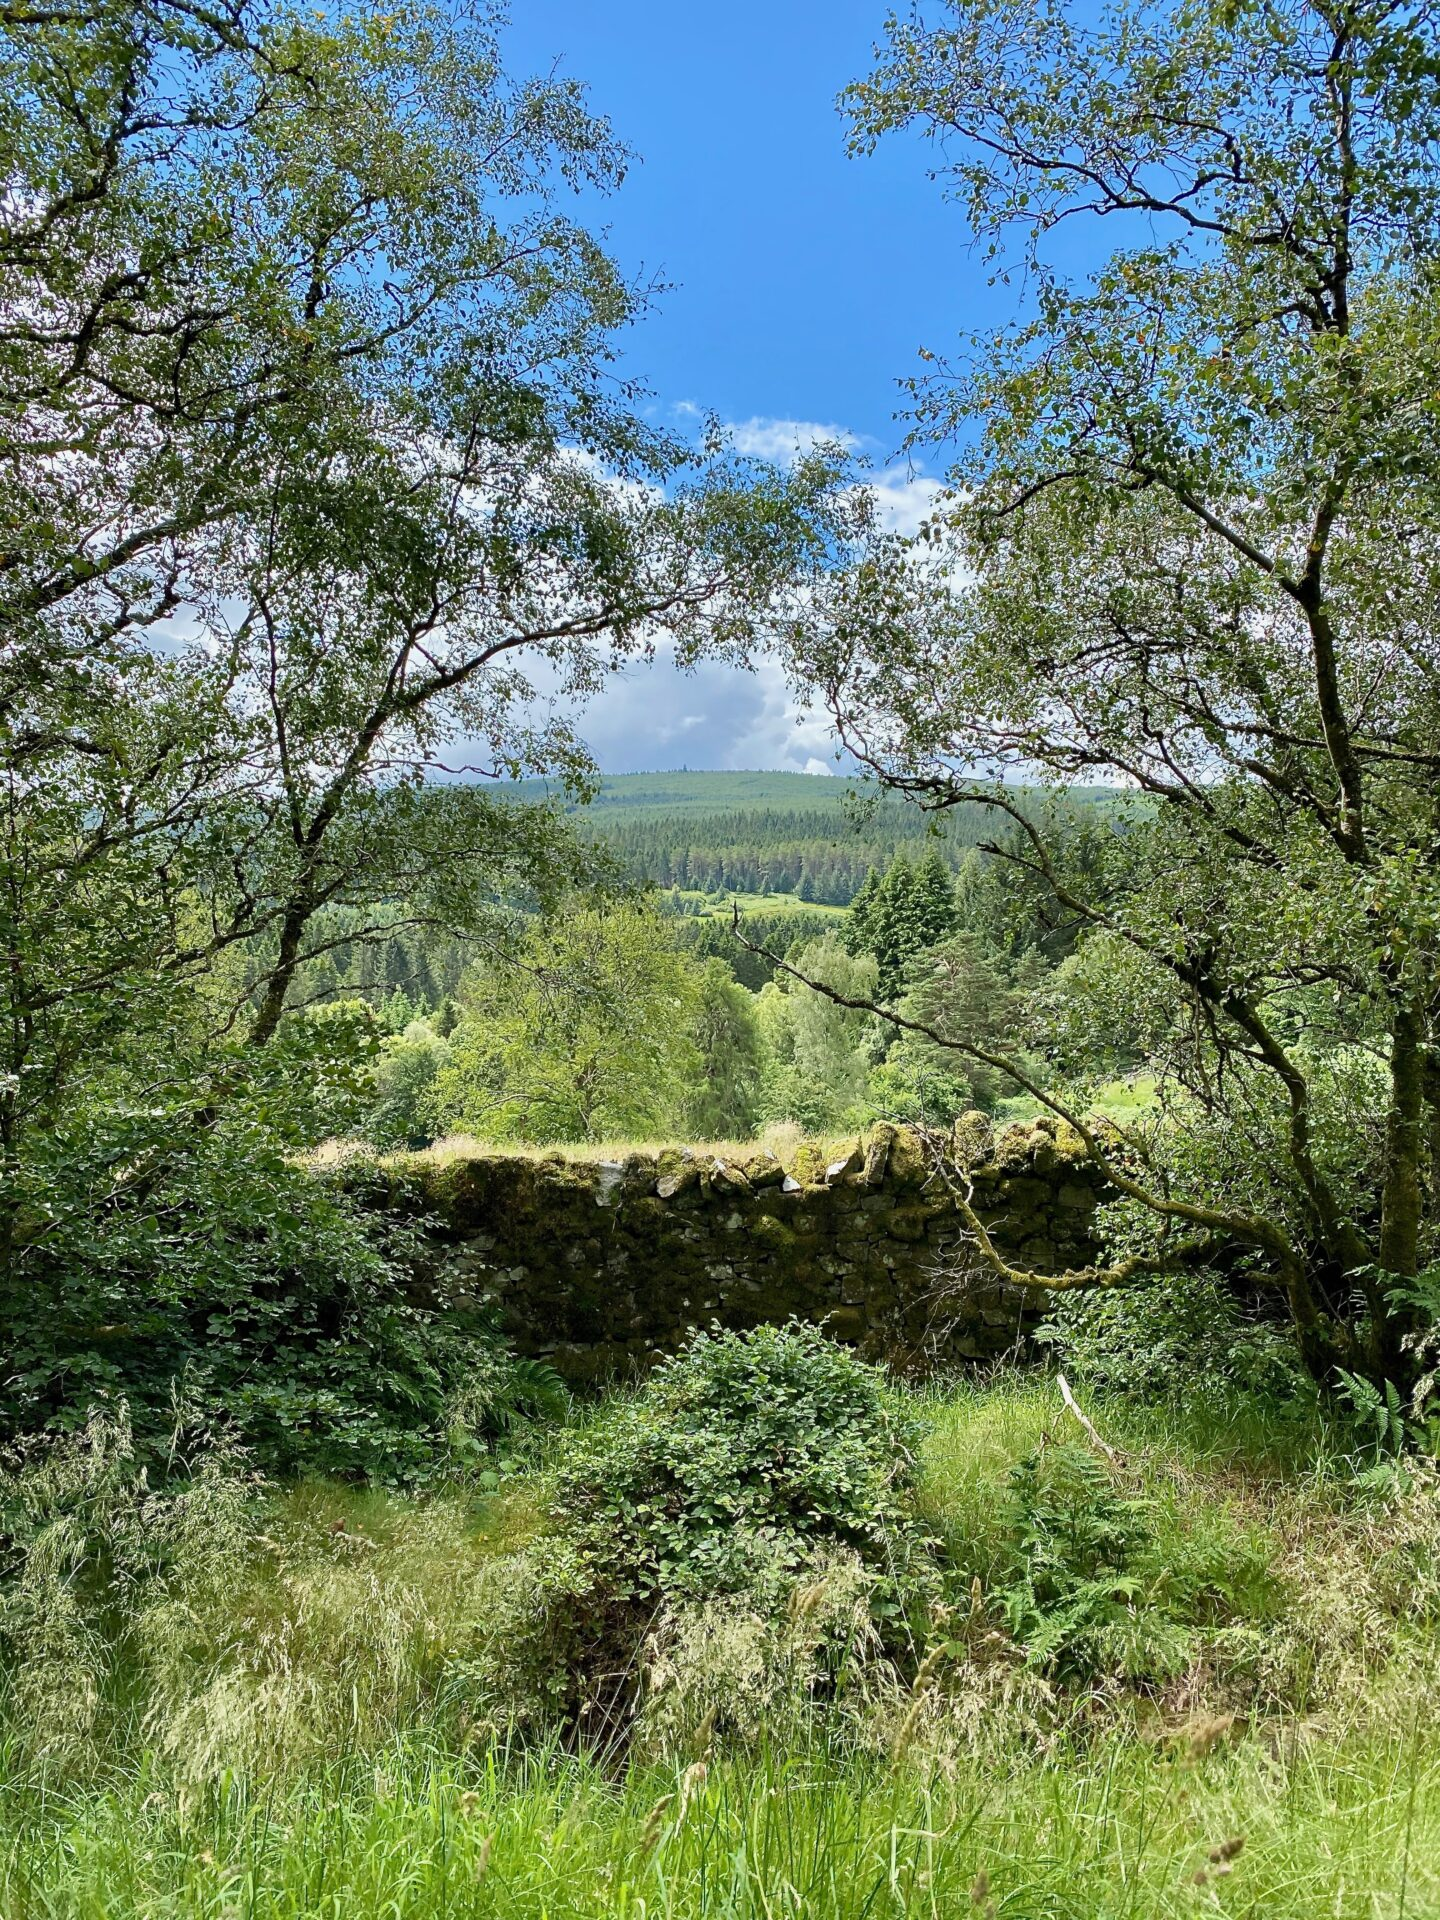 A picturesque view of a stone wall and trees